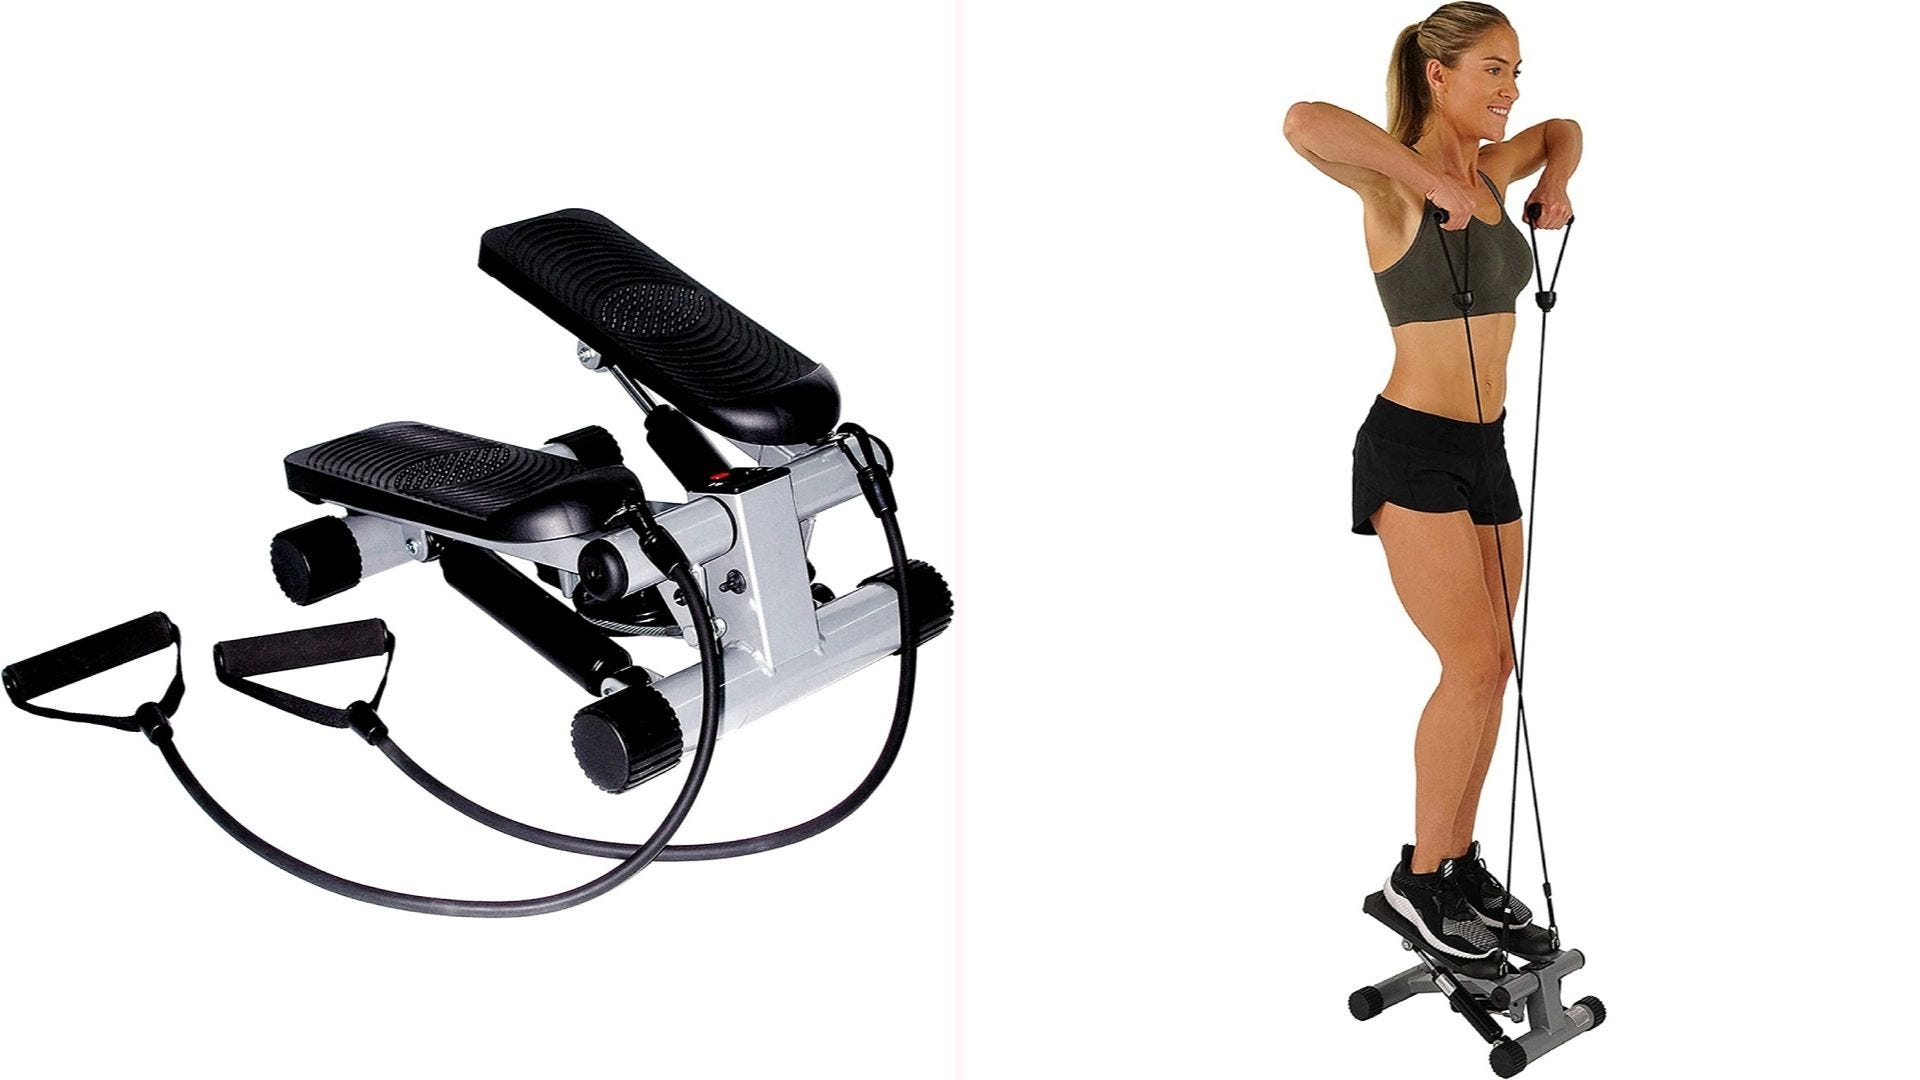 On the left, a compact stair stepper with black pedals, metal base, and resistance bands. On the right, a woman pulls on the resistance bands while standing on the machine.